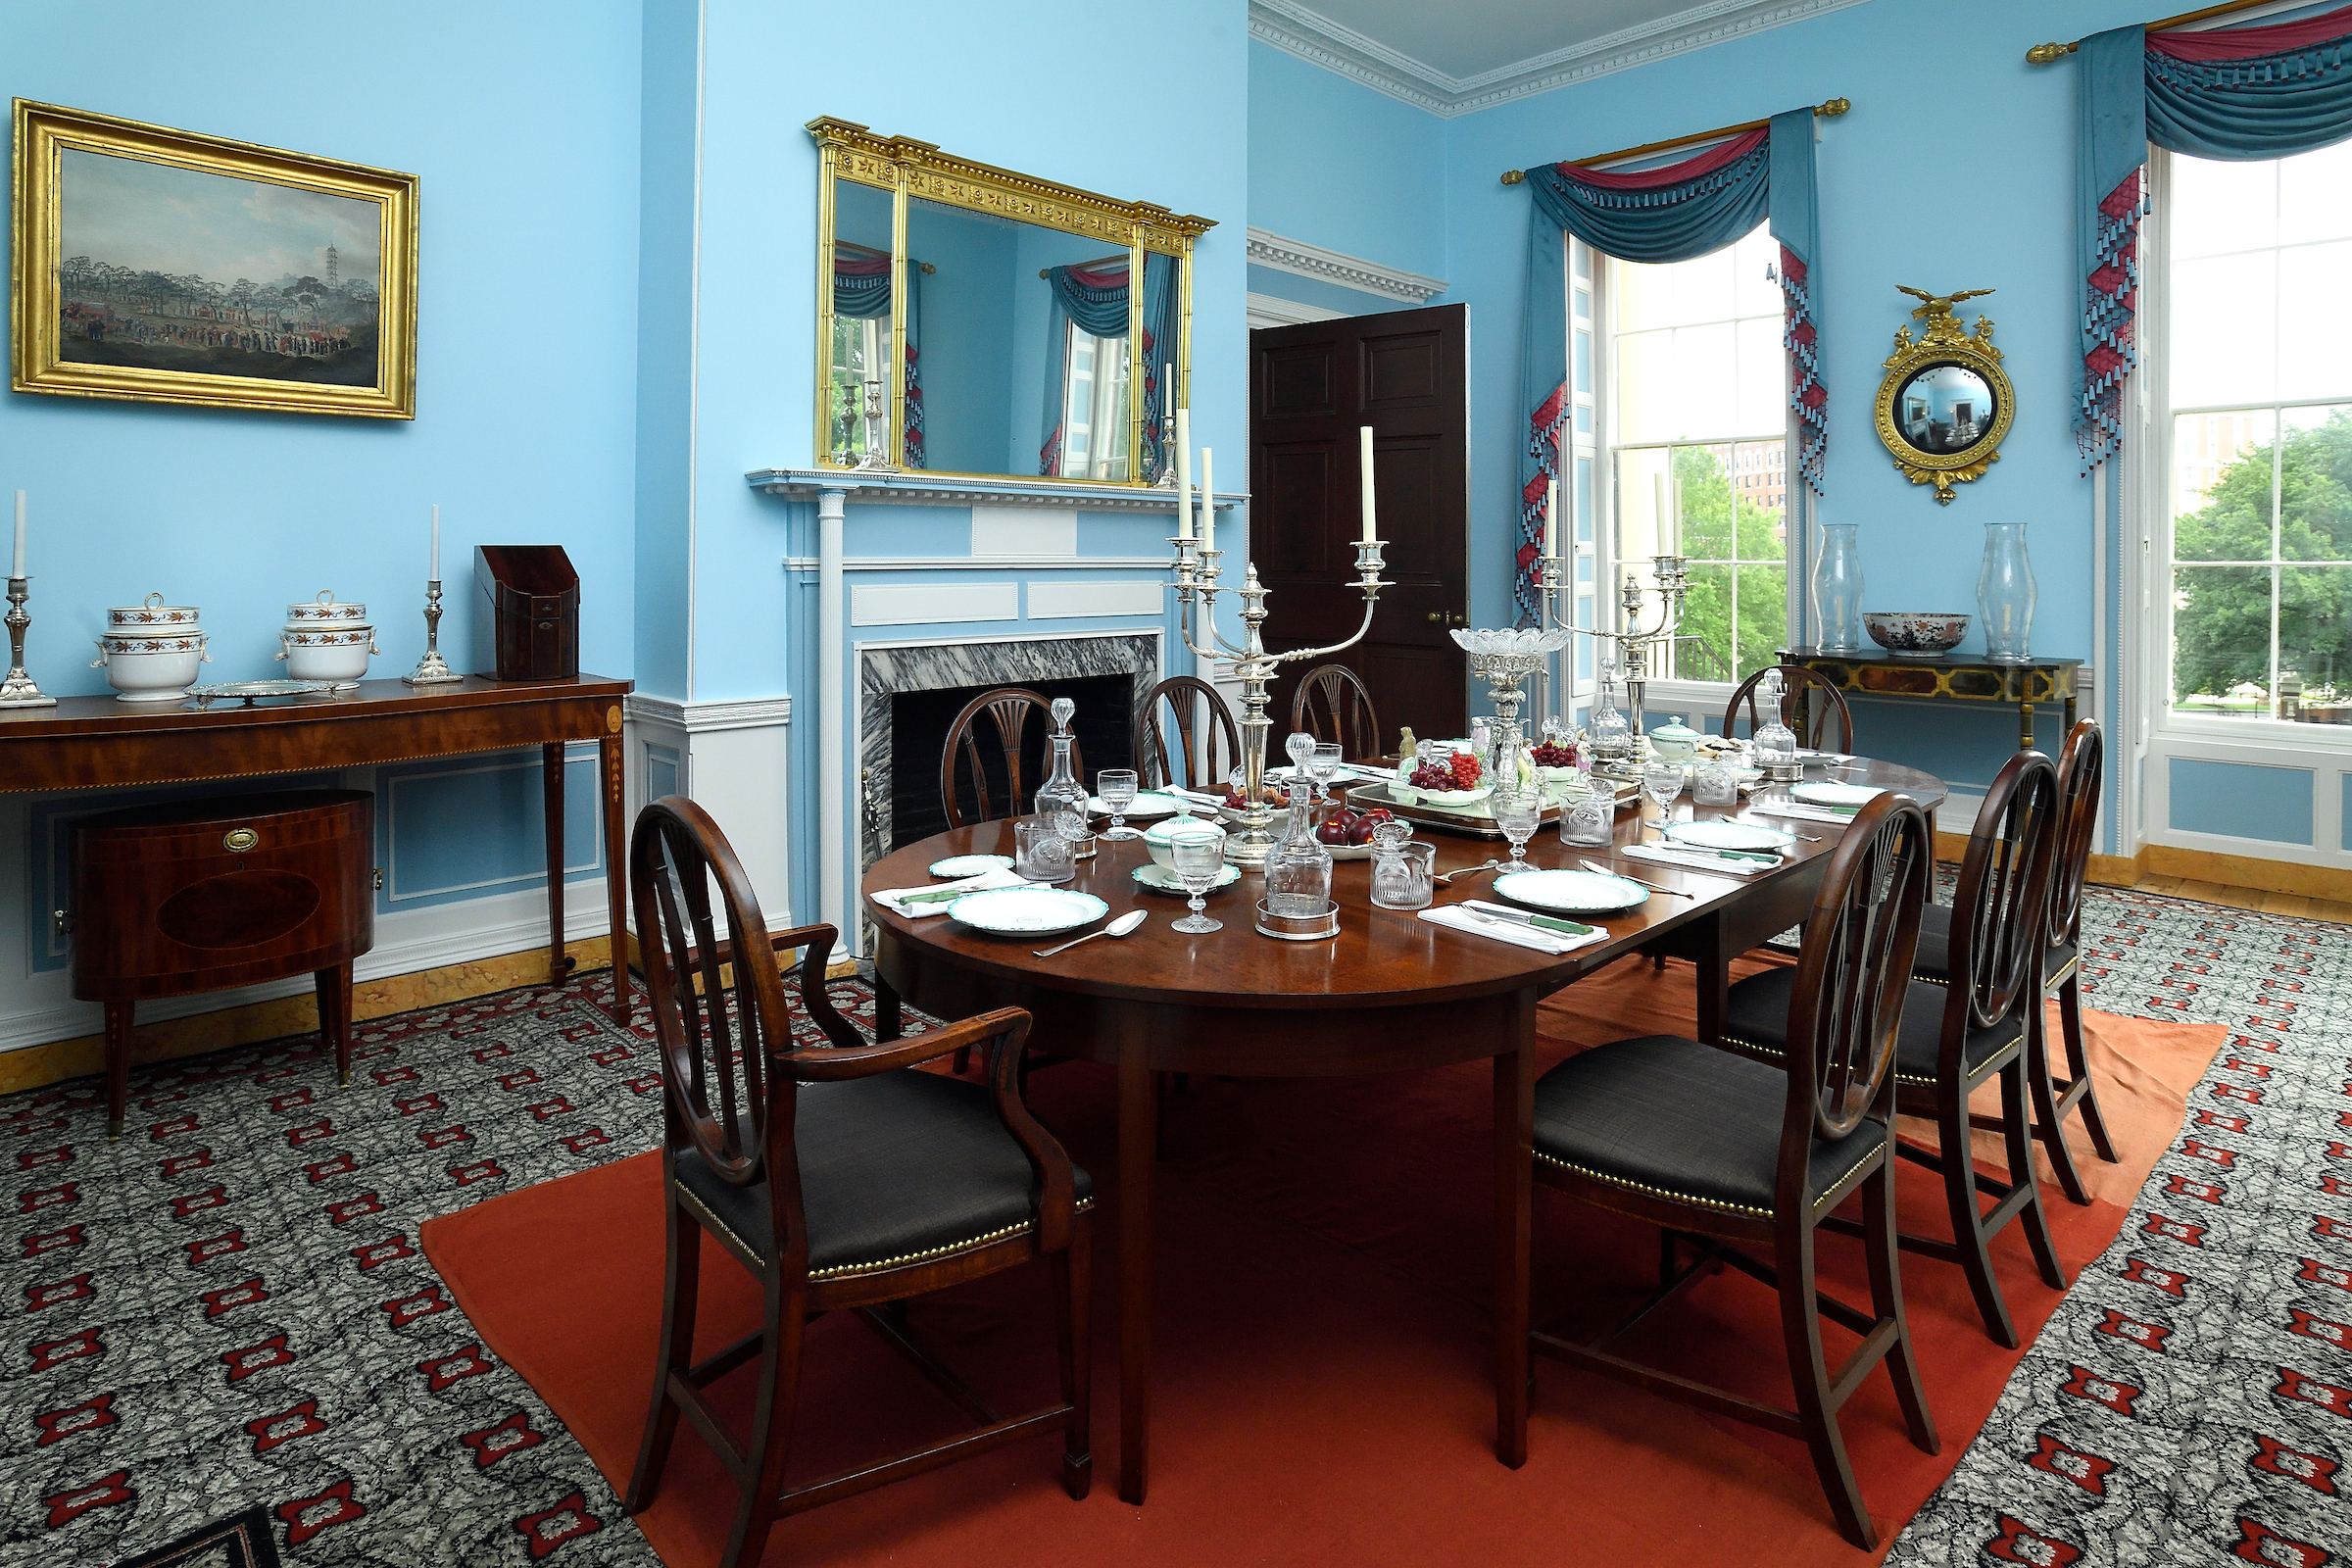 Homewood Museum Dining Room